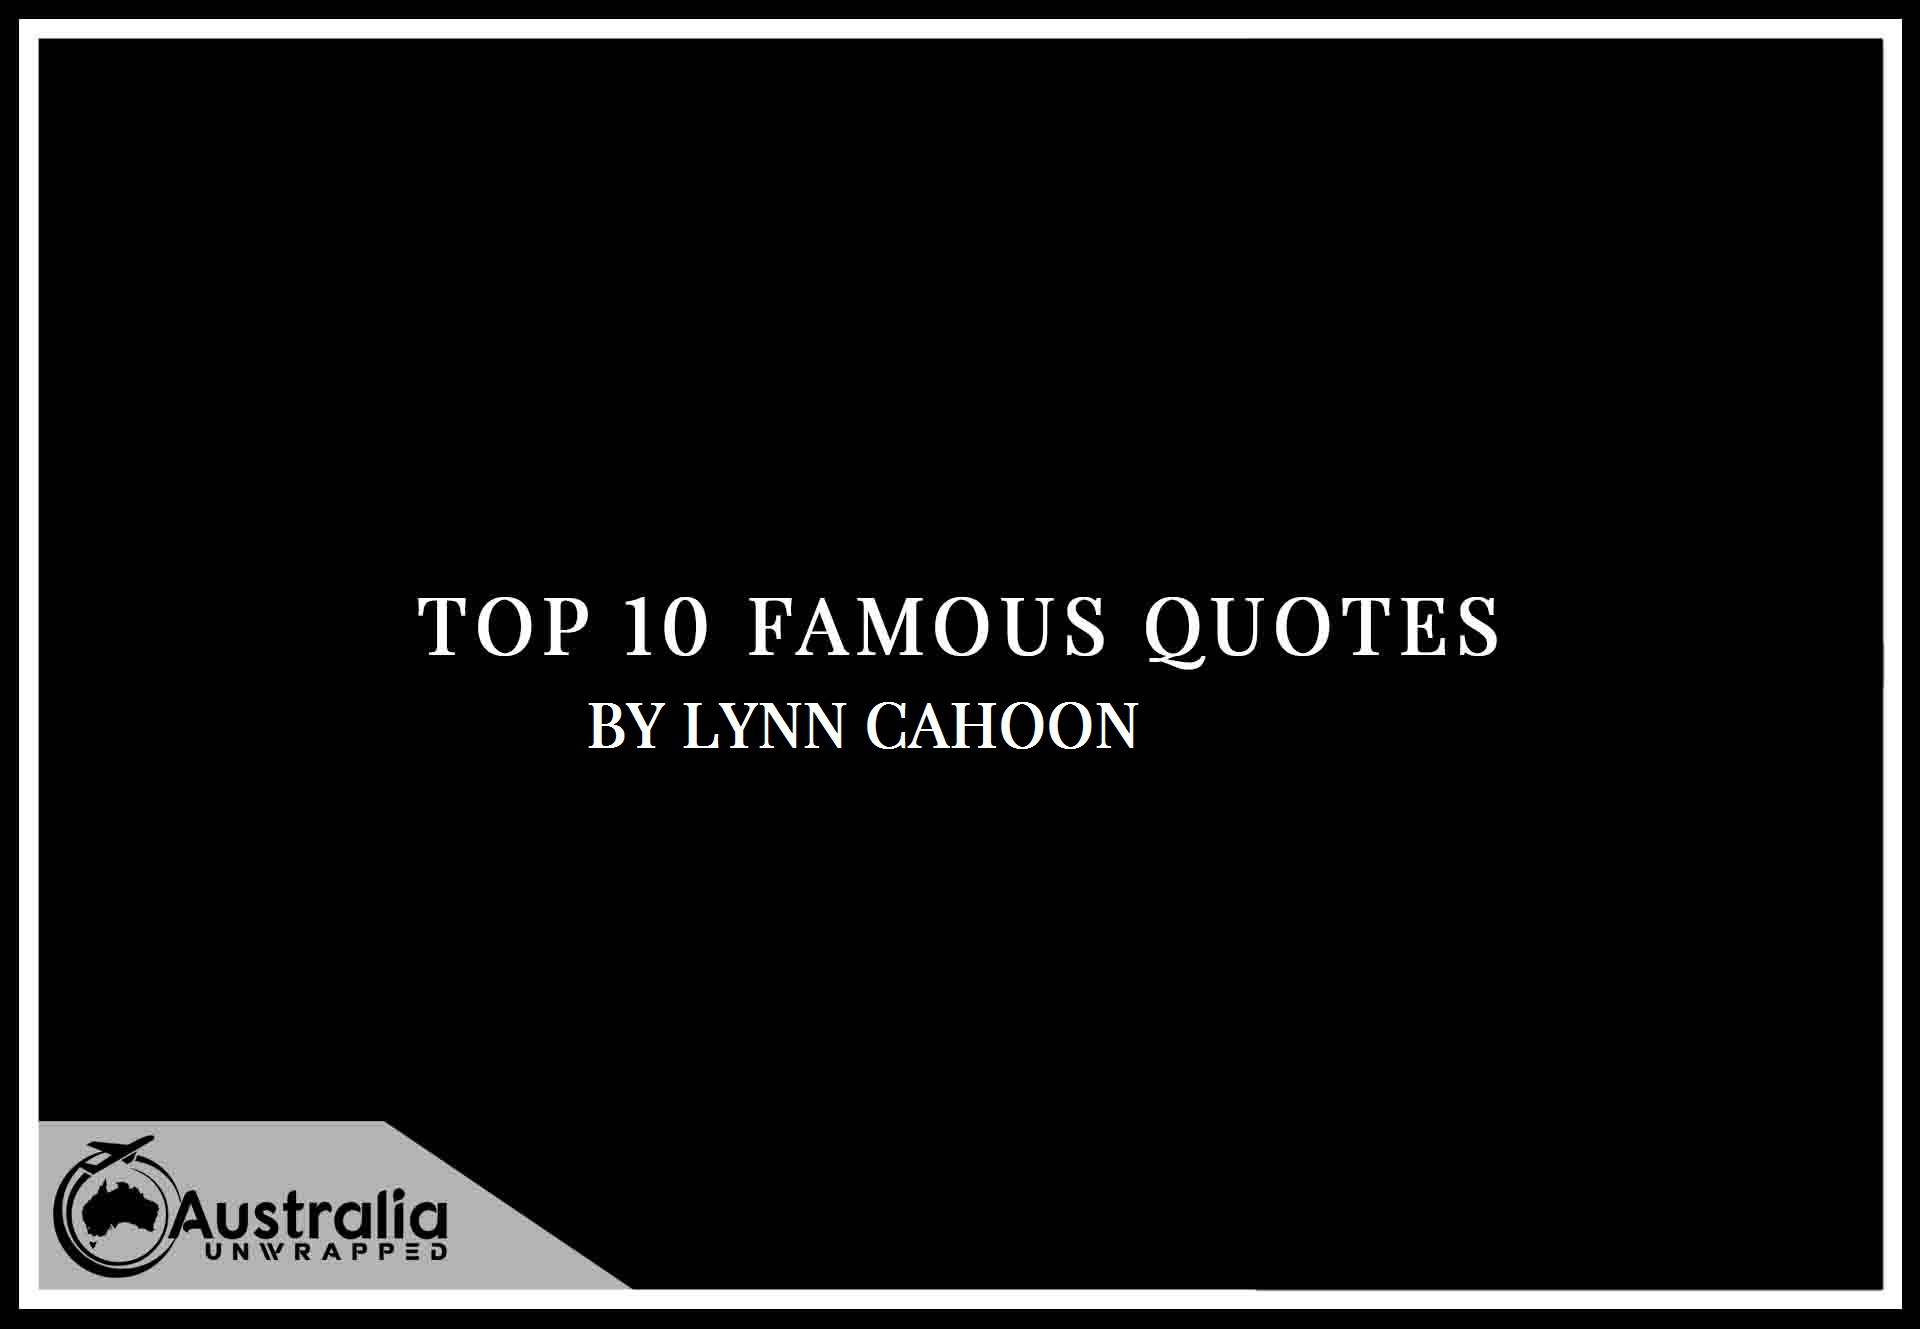 Lynn Cahoon's Top 10 Popular and Famous Quotes